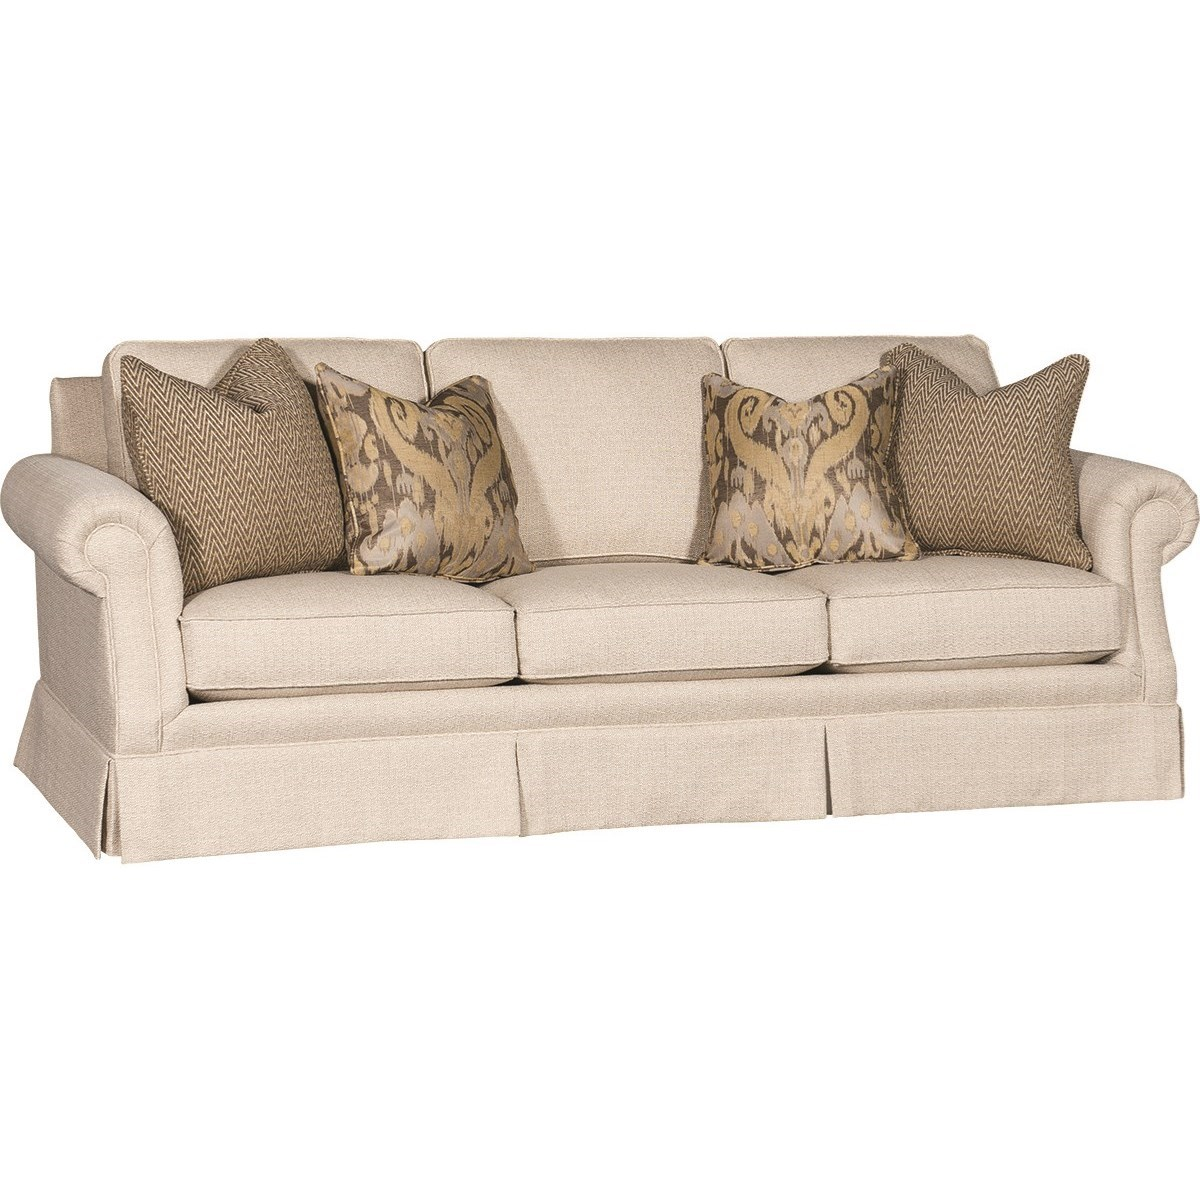 Mayo 2600 Sofa - Item Number: 2600F10-Howell_Flax